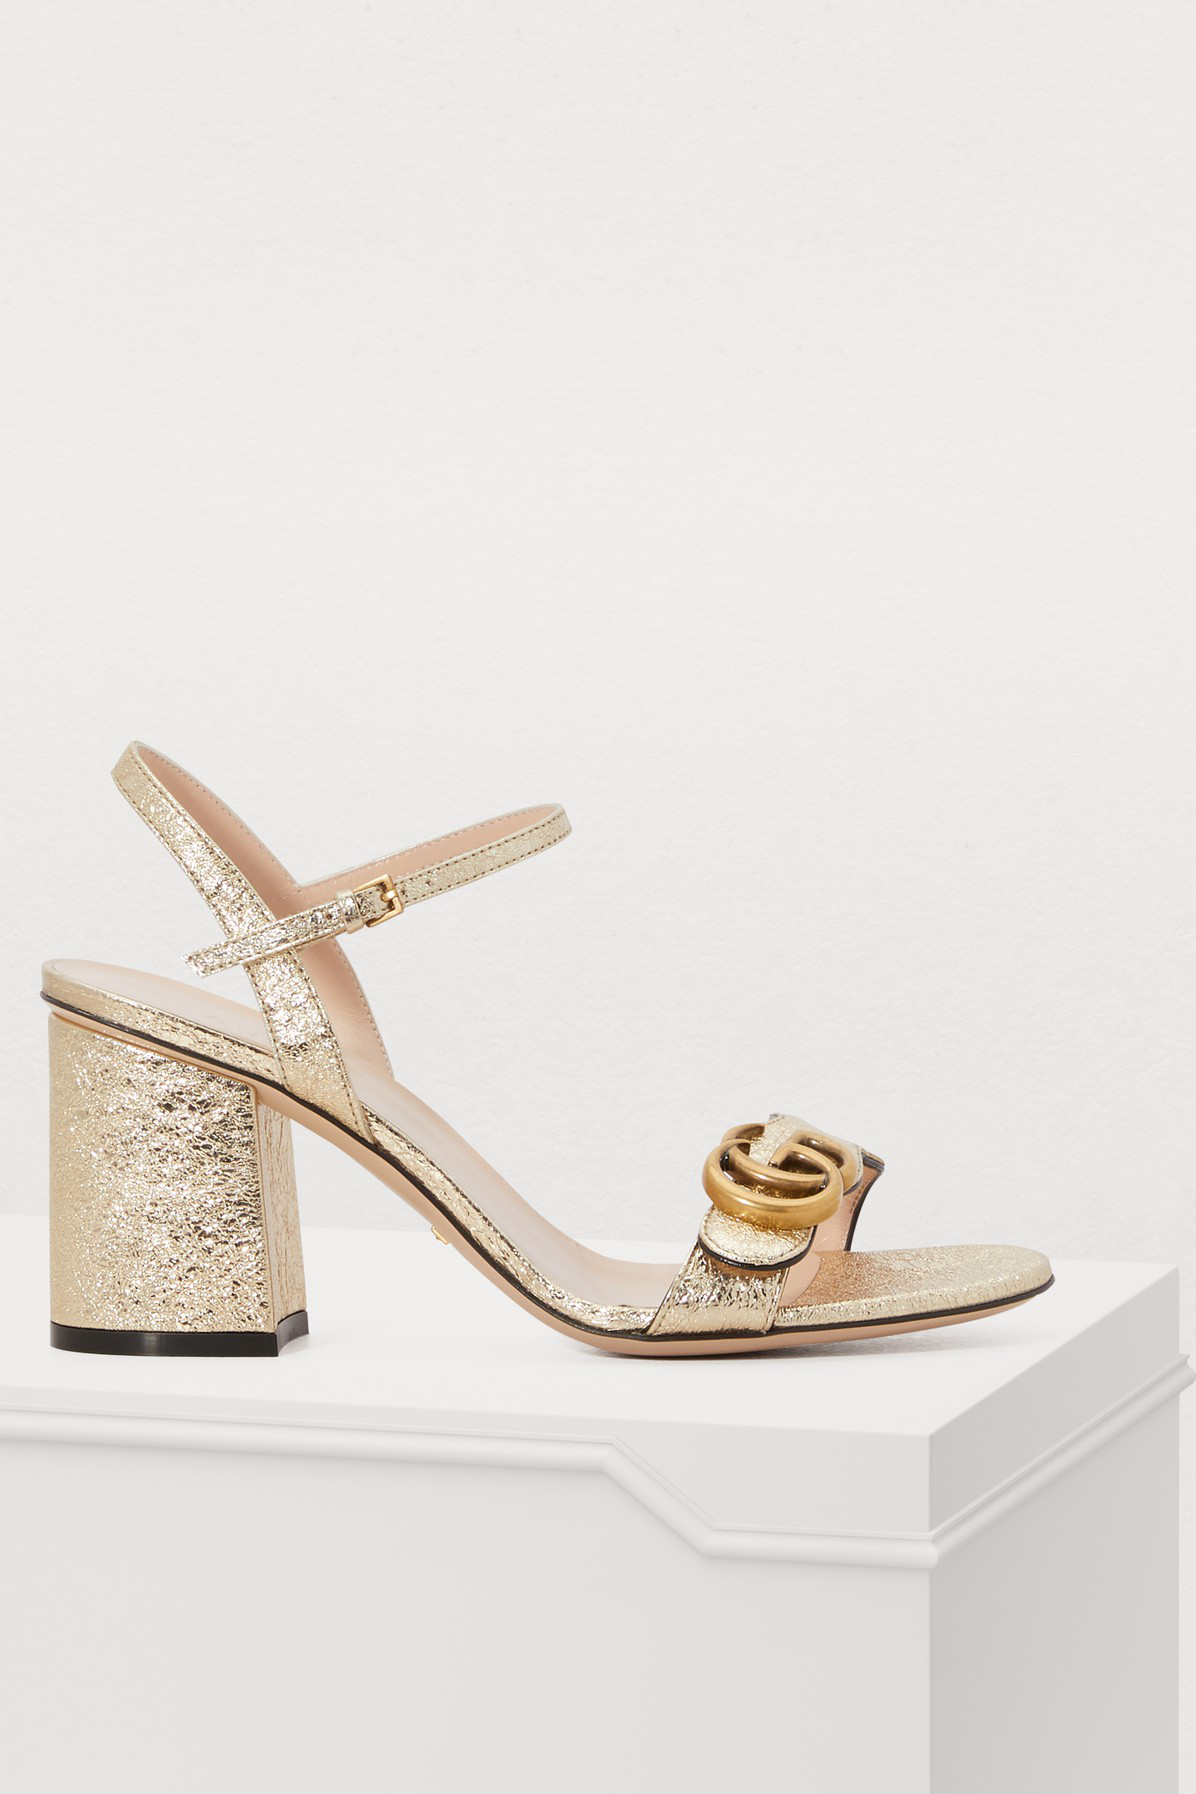 40b0c18112d Gucci Marmont Logo-Embellished Metallic Cracked-Leather Sandals In Gold